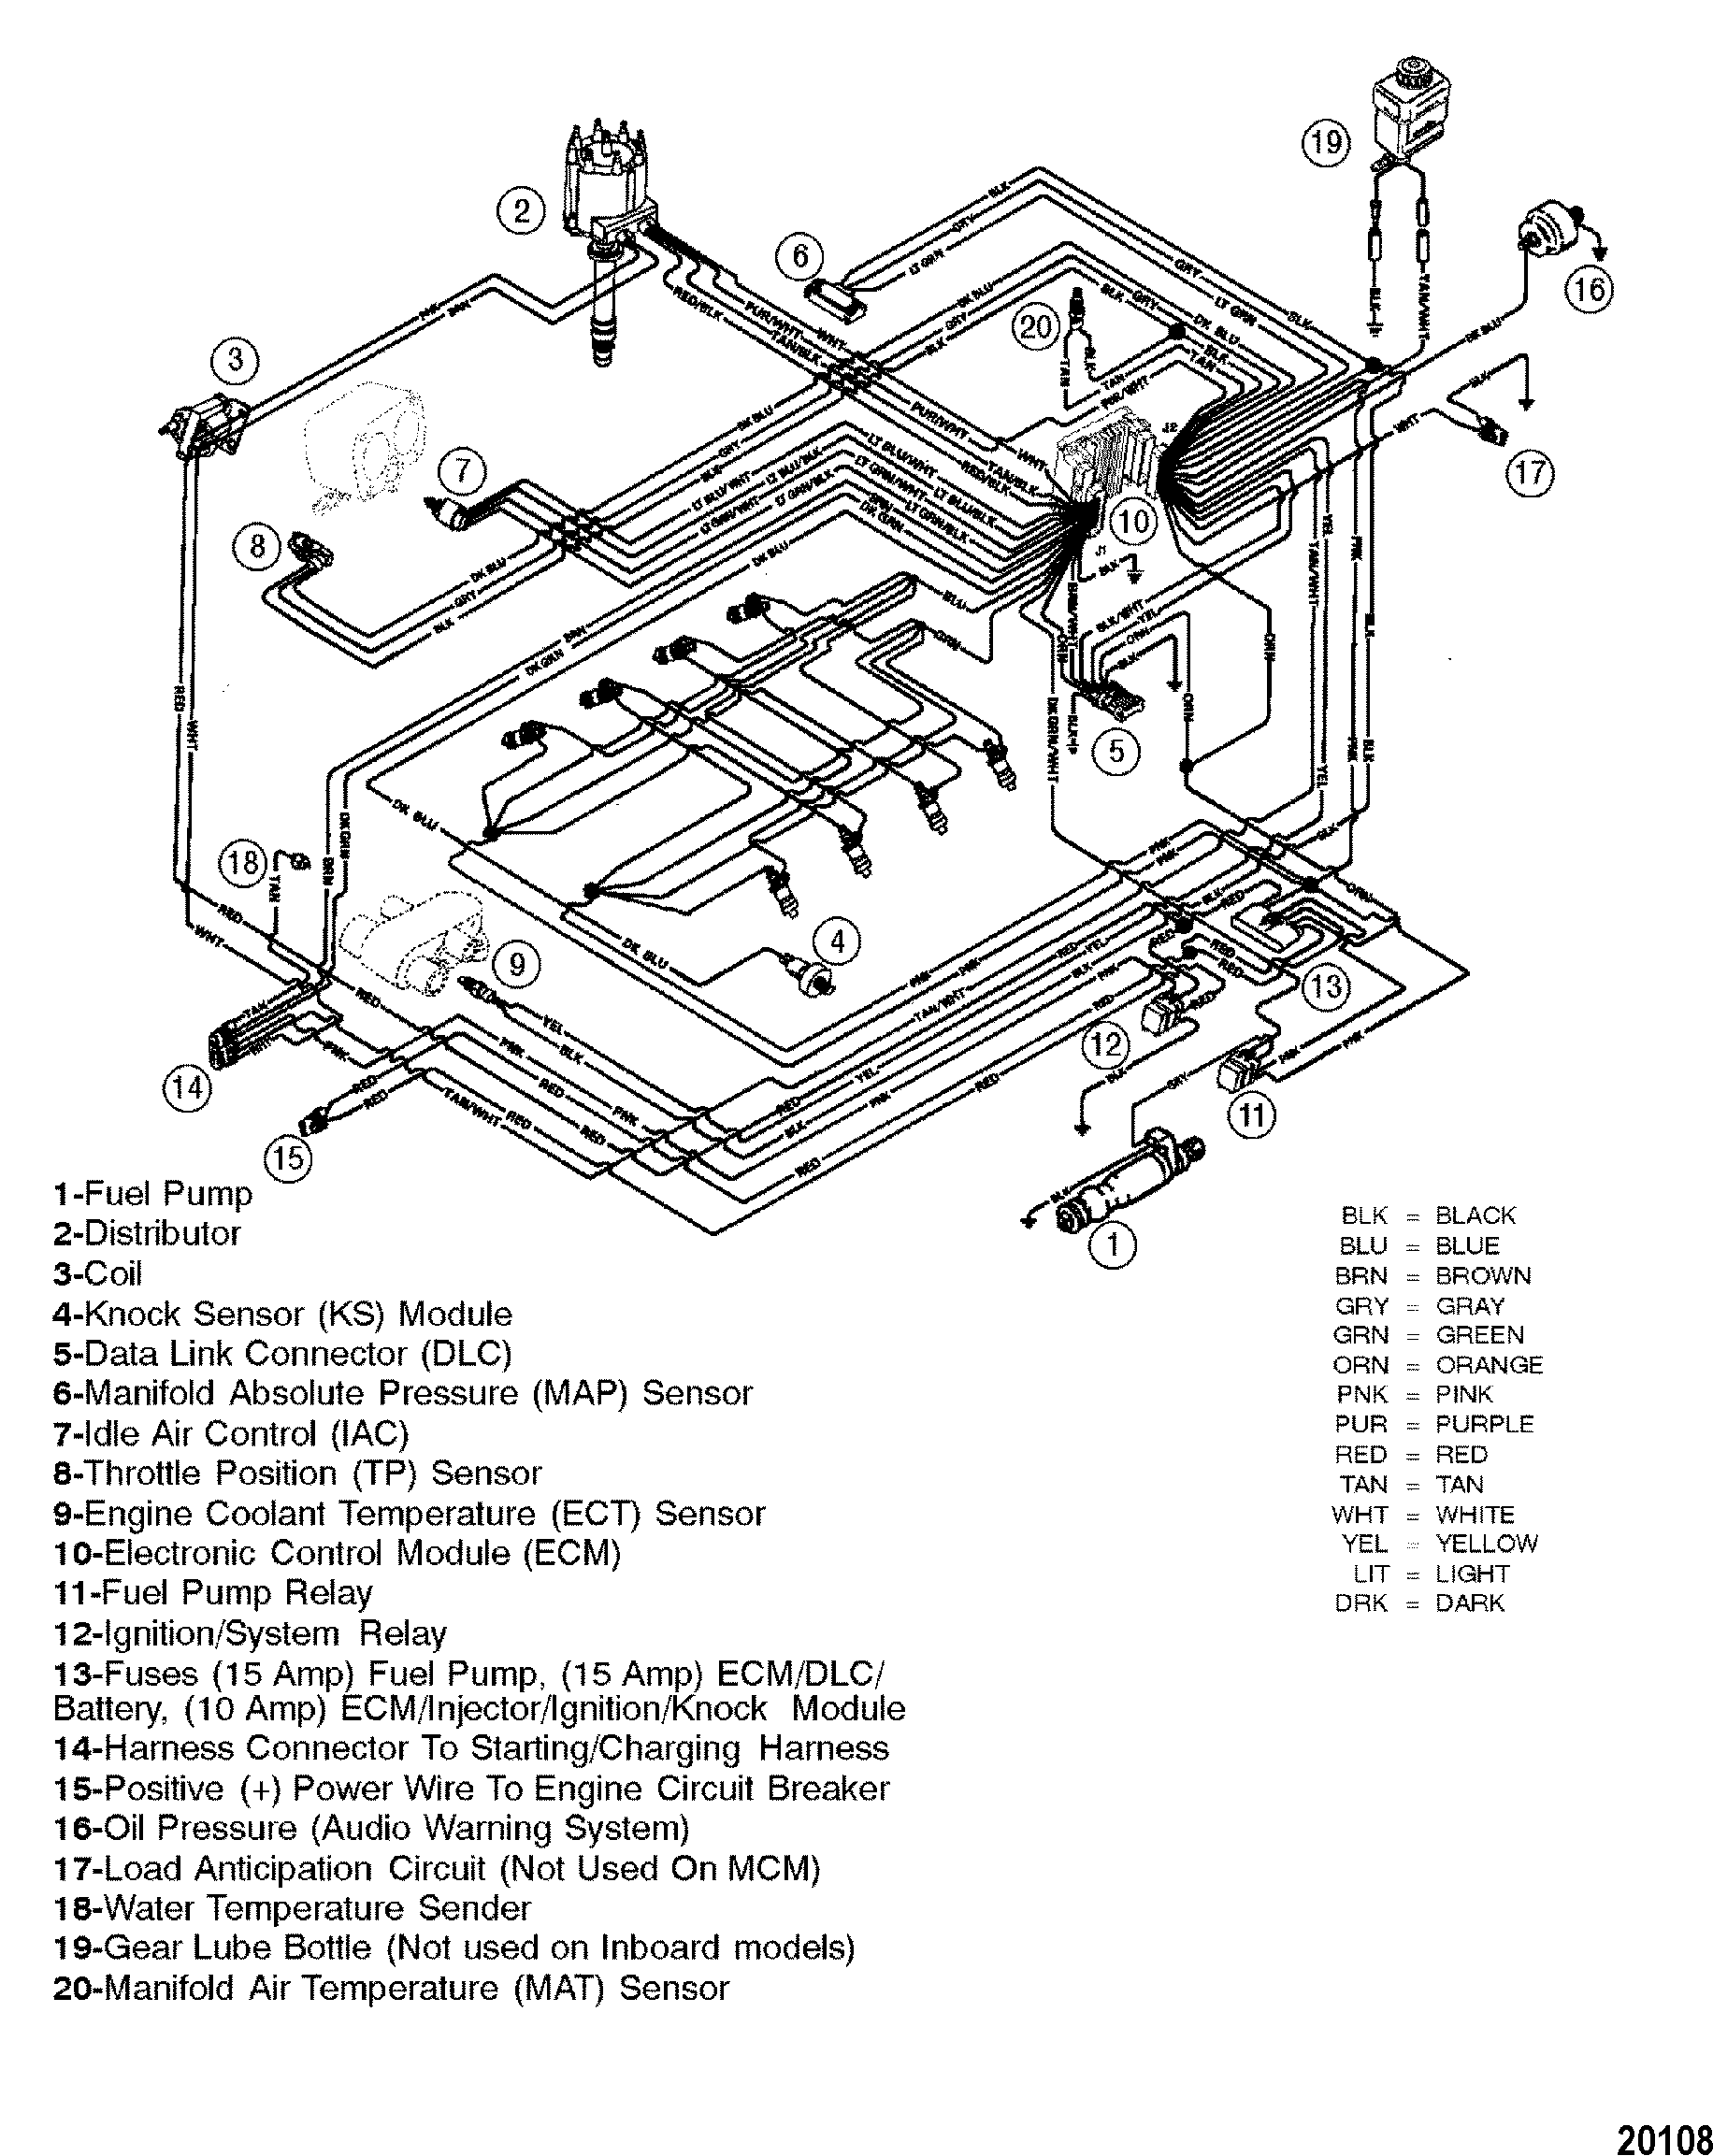 hight resolution of 5 7 mercruiser wiring diagram wiring diagram schematics mercruiser starter solenoid wiring diagram 5 7 mercruiser starter wiring diagram